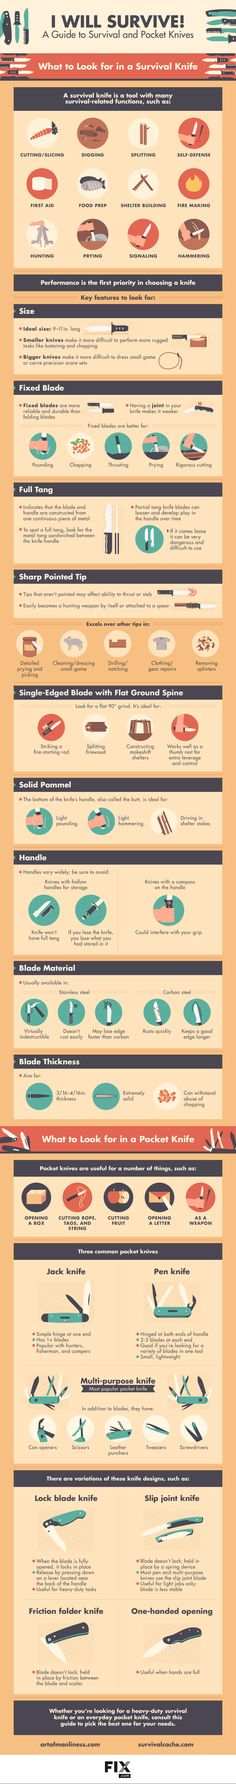 I Will Survive! A Guide to Survival and Pocket Knives infographic